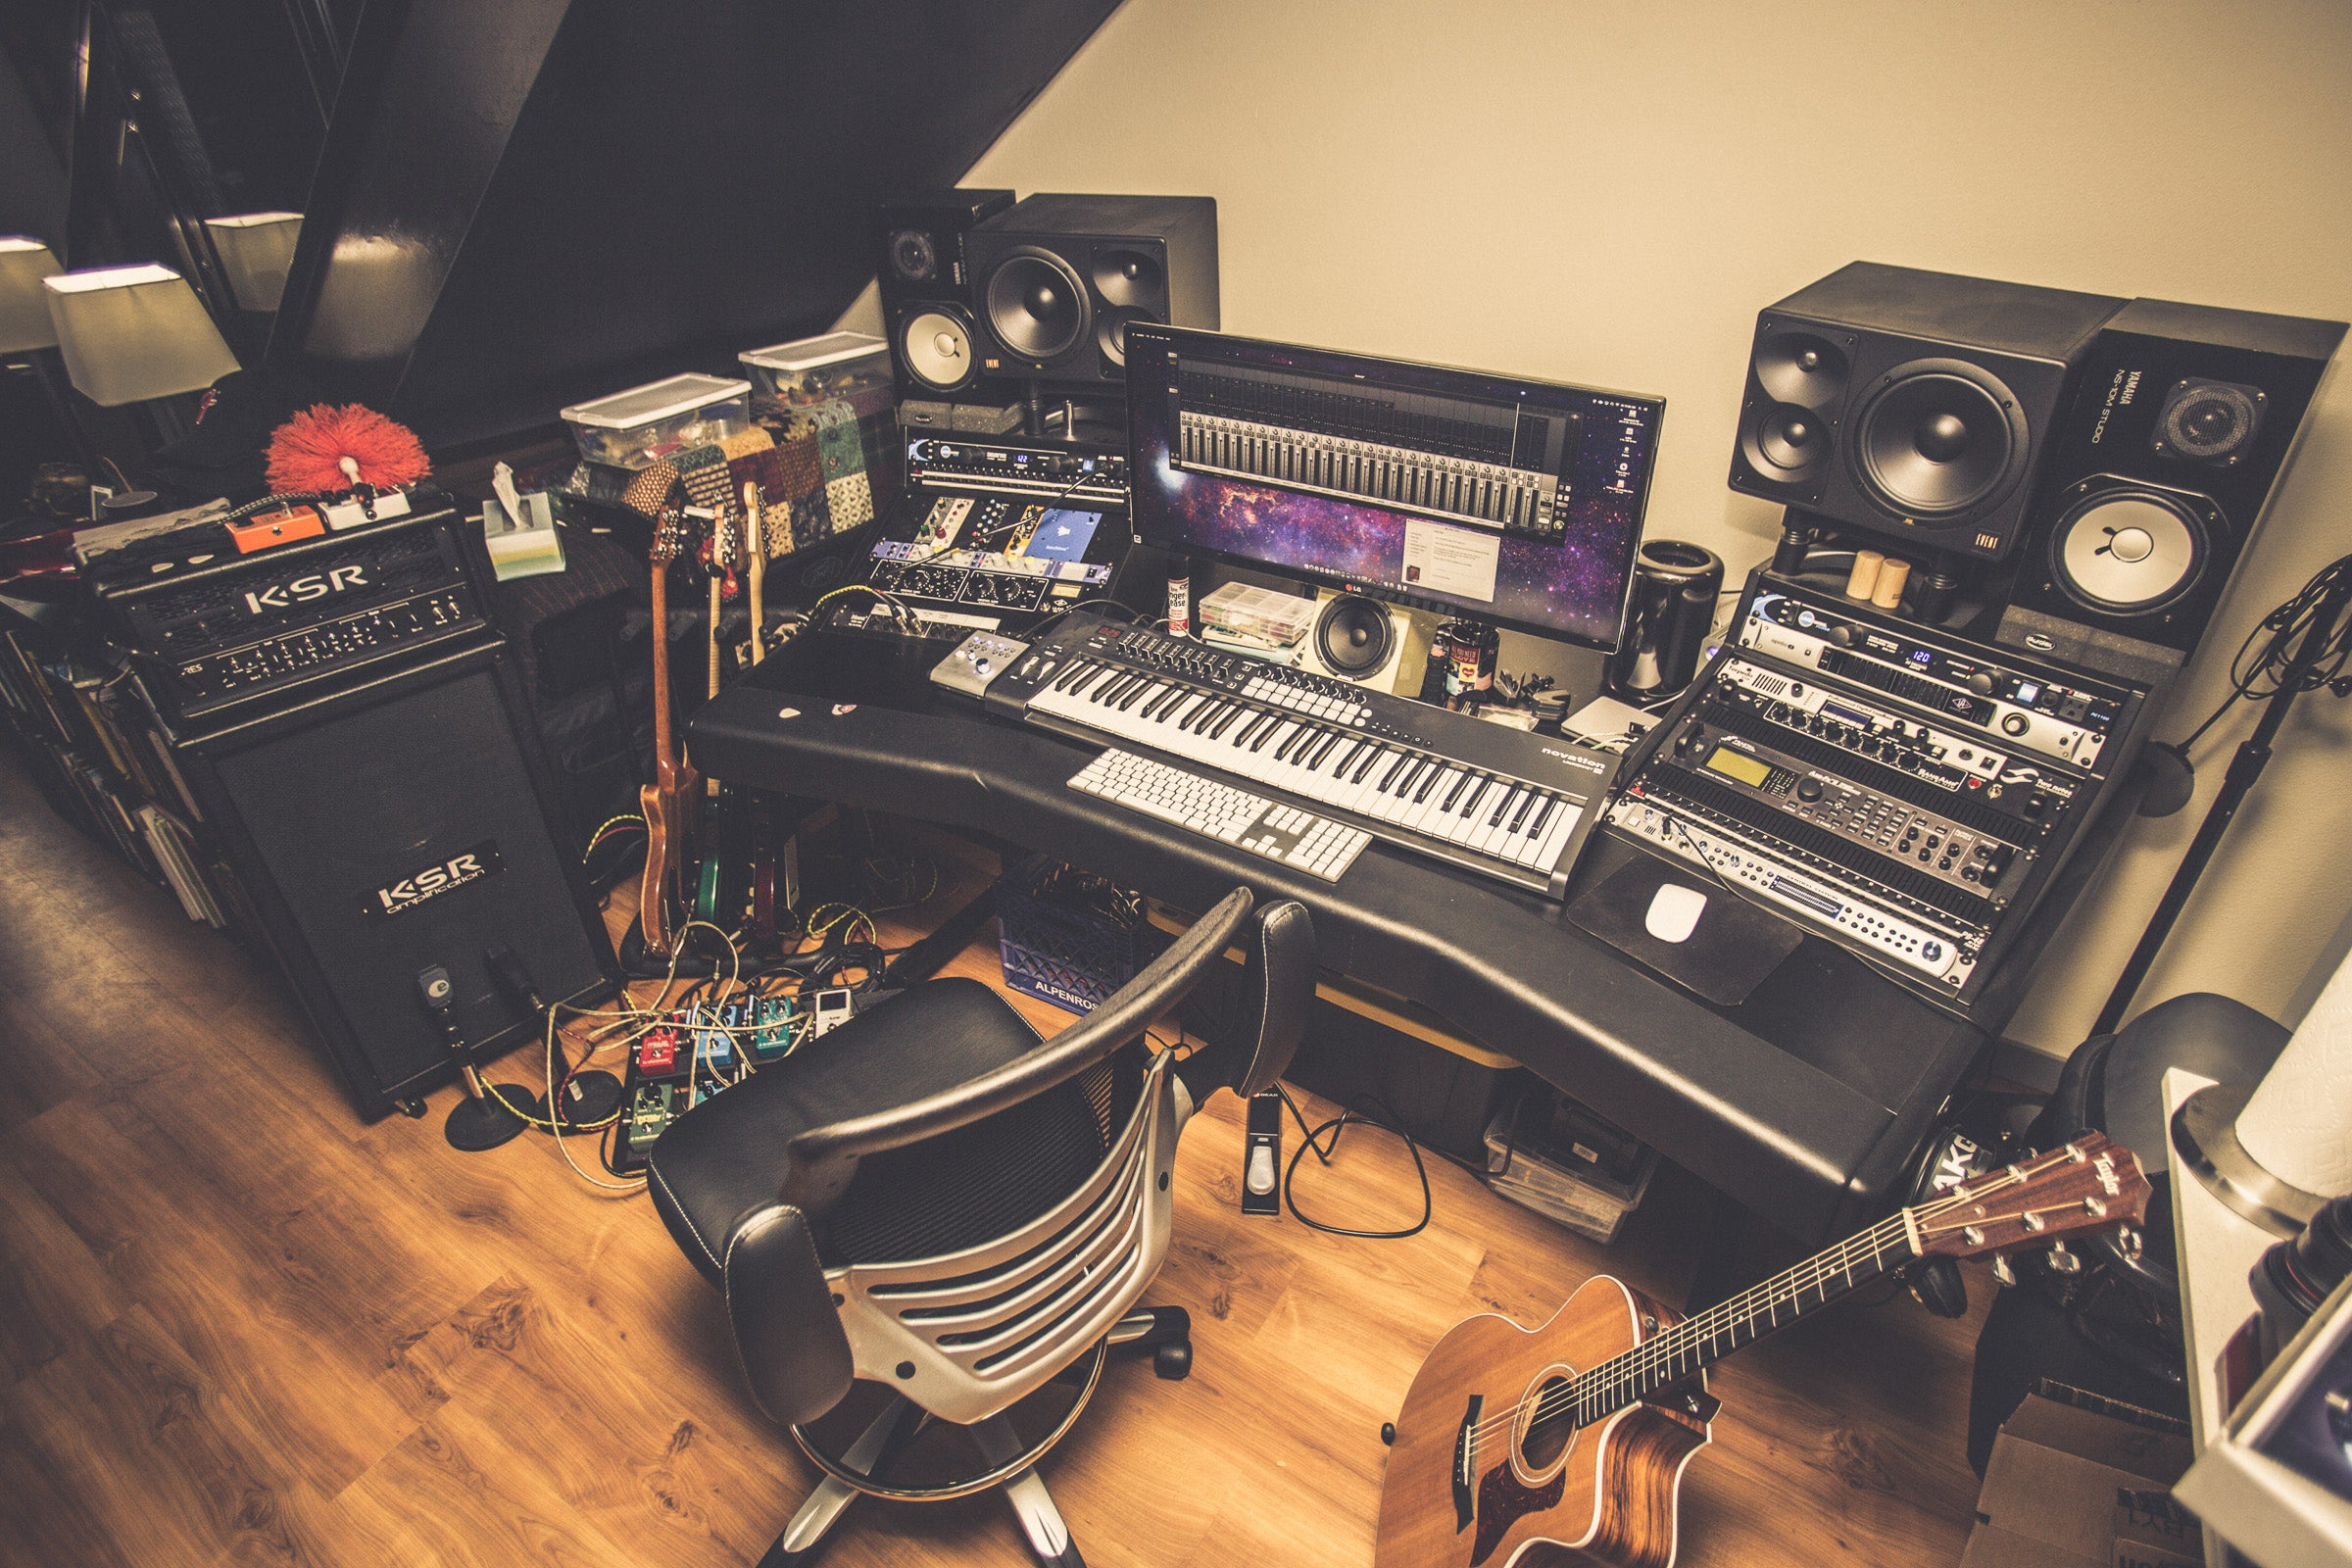 The Musician's Paradise Workspace